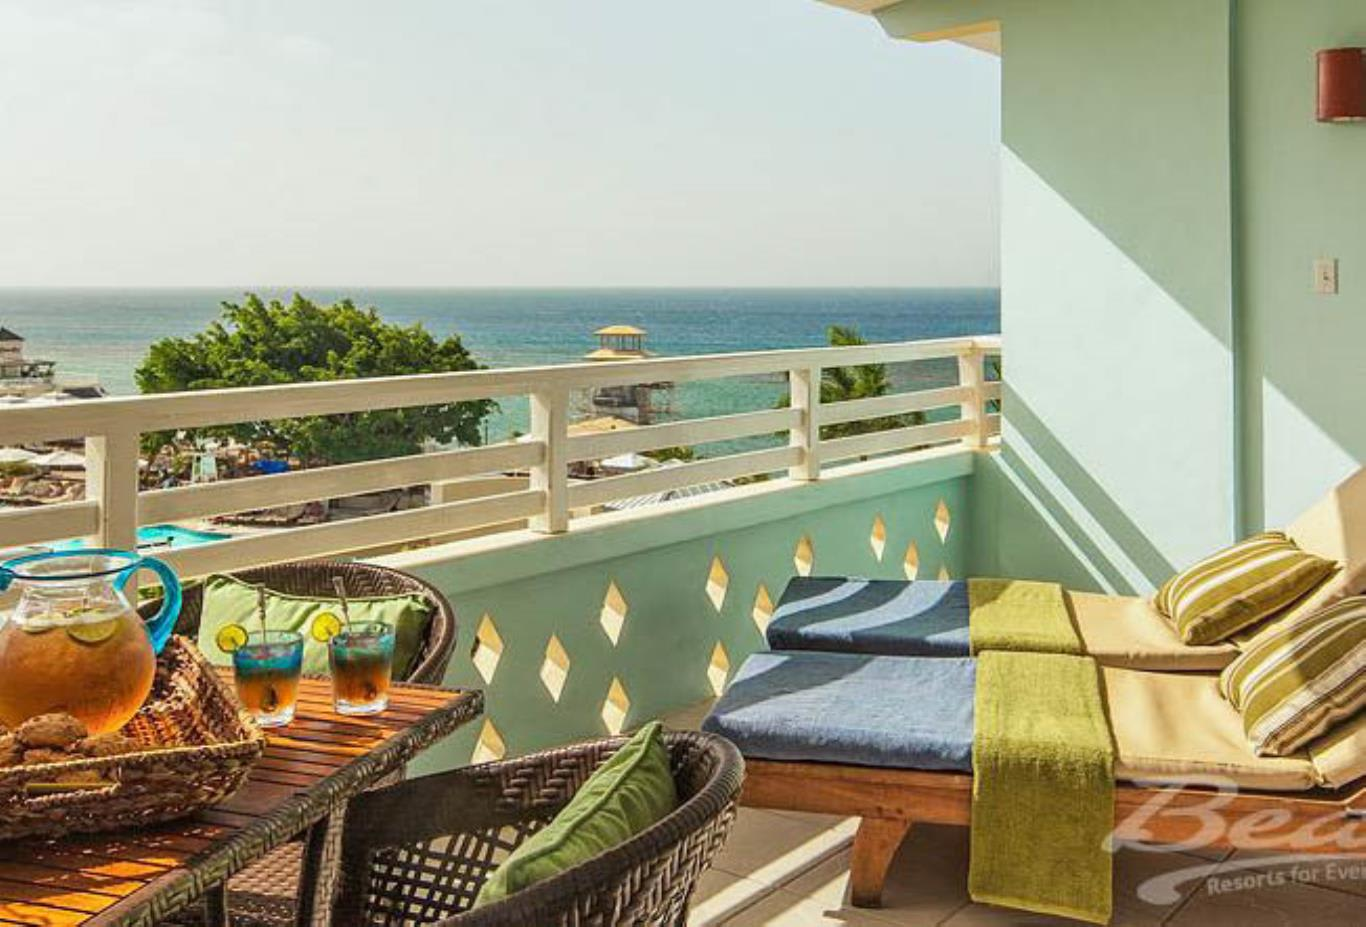 Caribbean Honeymoon Oceanview Concierge Veranda Suite - HOVK,HOVD 2